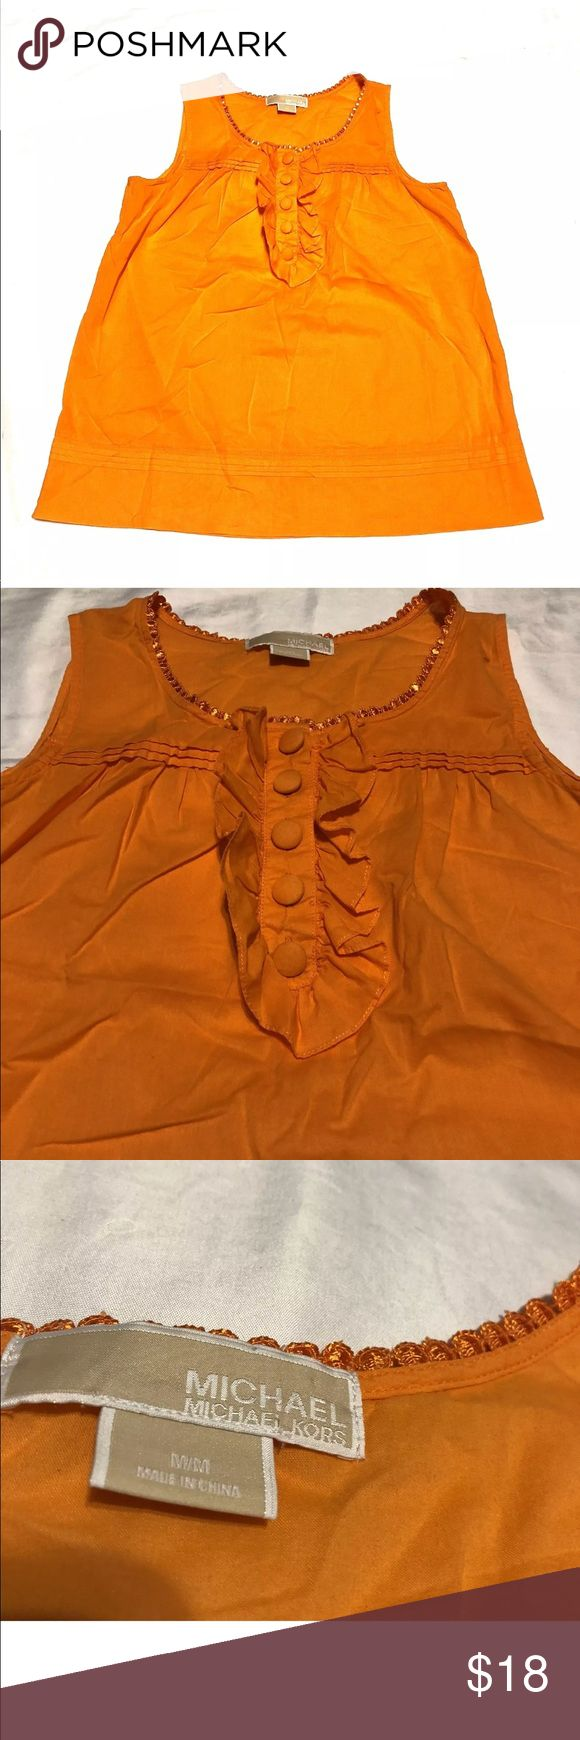 """Michael Kors sleeveless top blouse ruffle orange Michael Kors women's top  Orange  Size M  top is very thin material, might need to consider a cami underneath  Missing care tag  Measurements:  Armpit to armpit 19""""  Length from armpit down 17.5""""  Smoke free home  FAST SHIPPING Michael Kors Tops Blouses"""